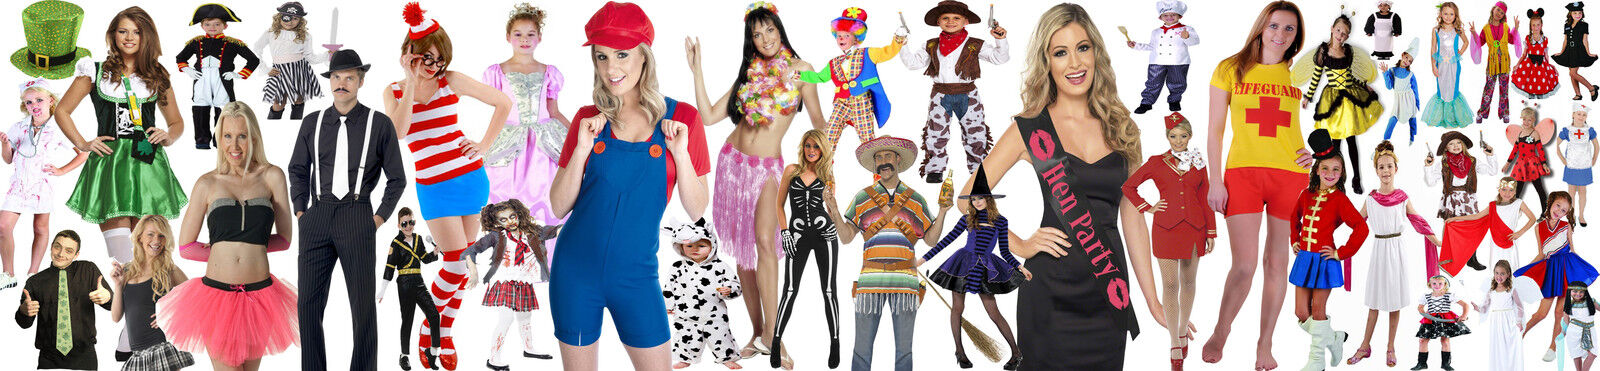 ALL PARTY FANCY DRESS